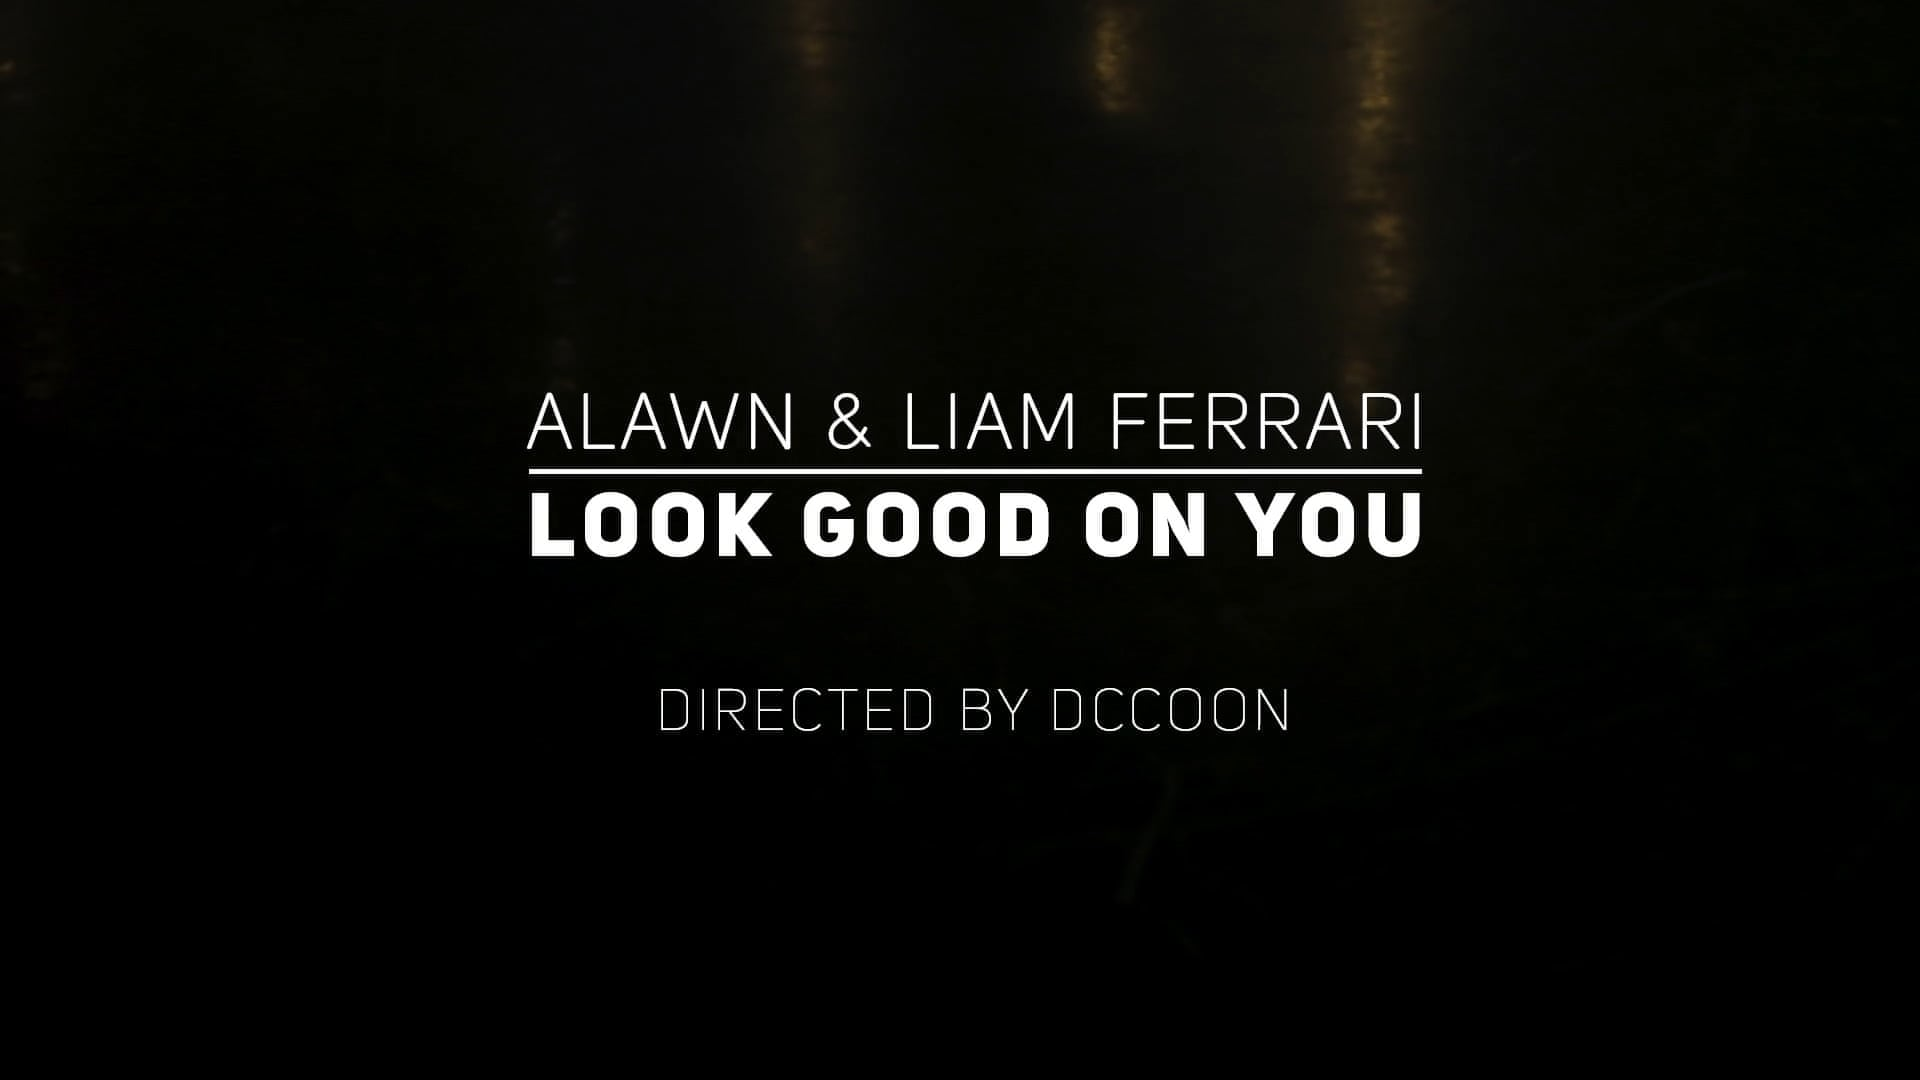 I look Good on you